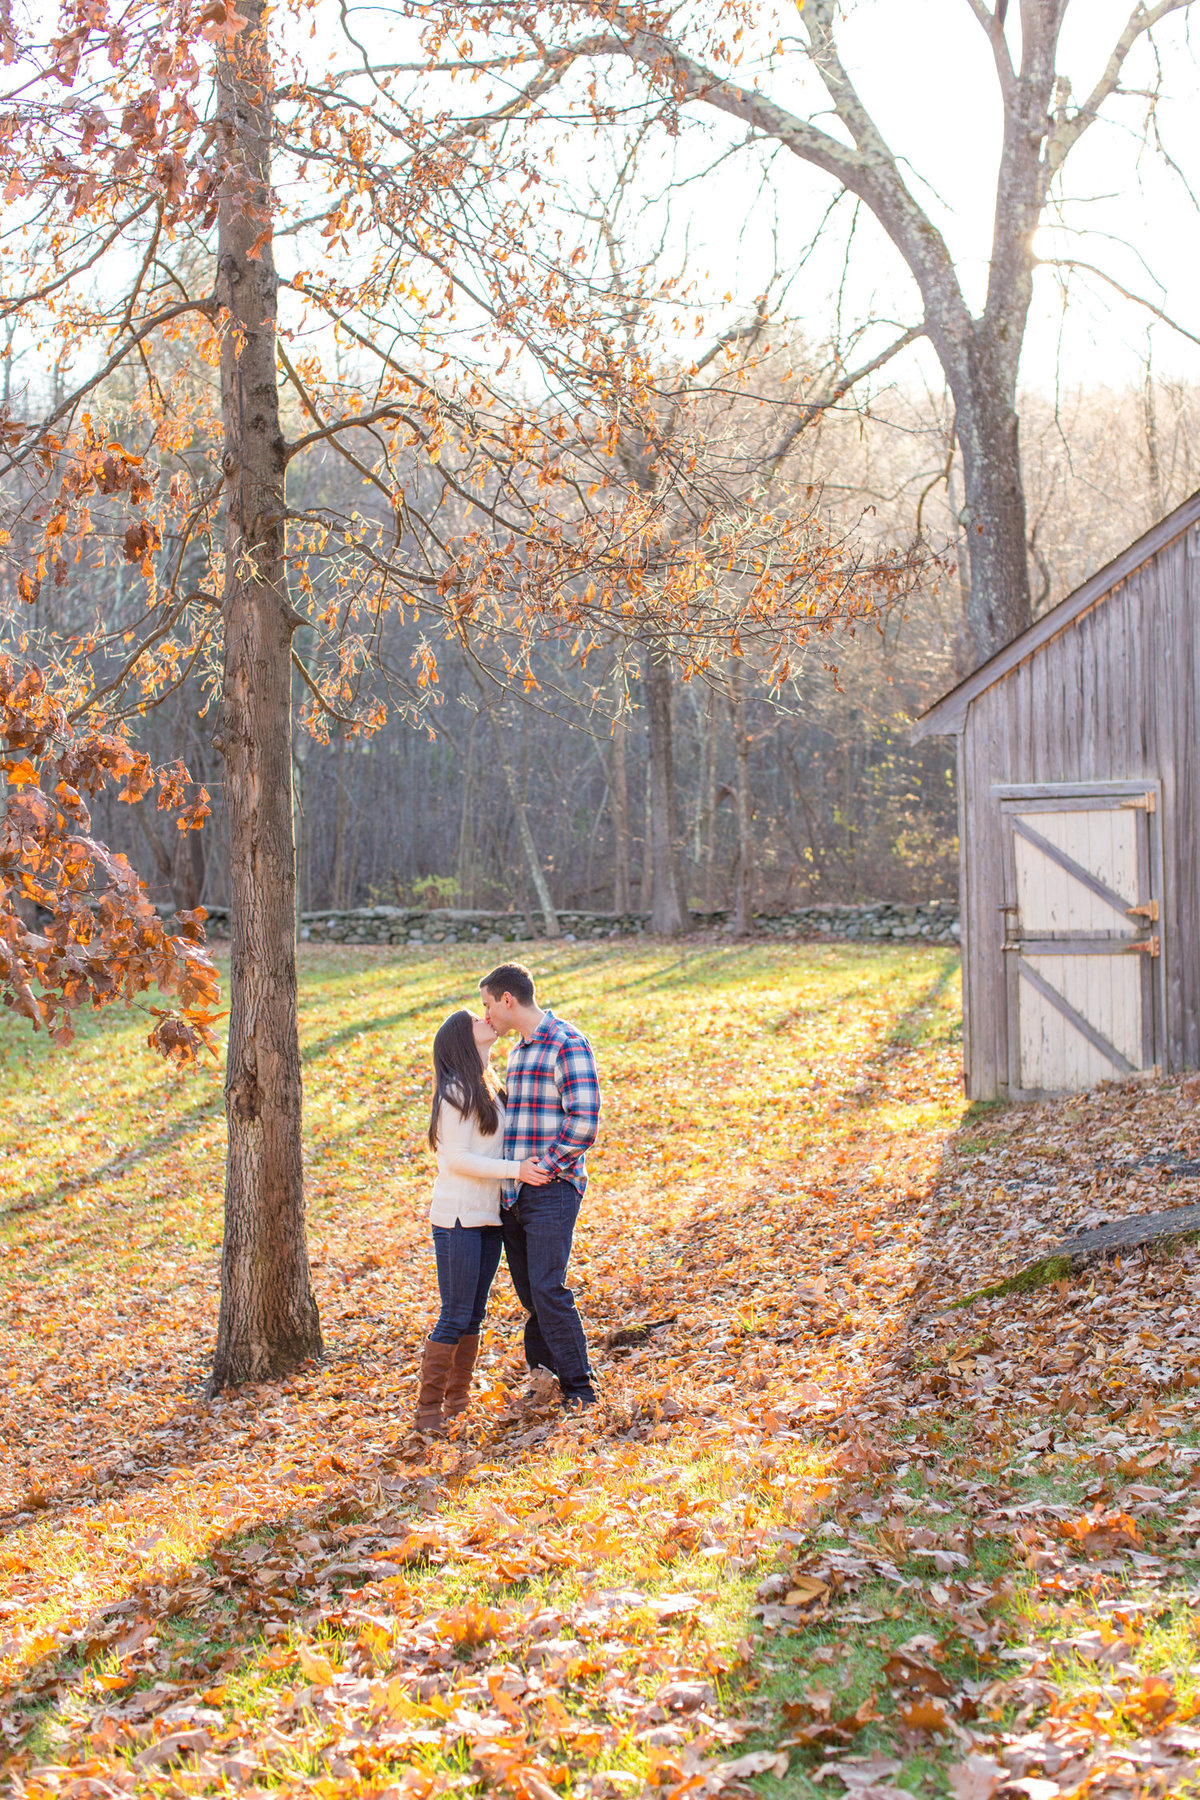 Laura-Klacik-Photography-Engagement-Photos-30